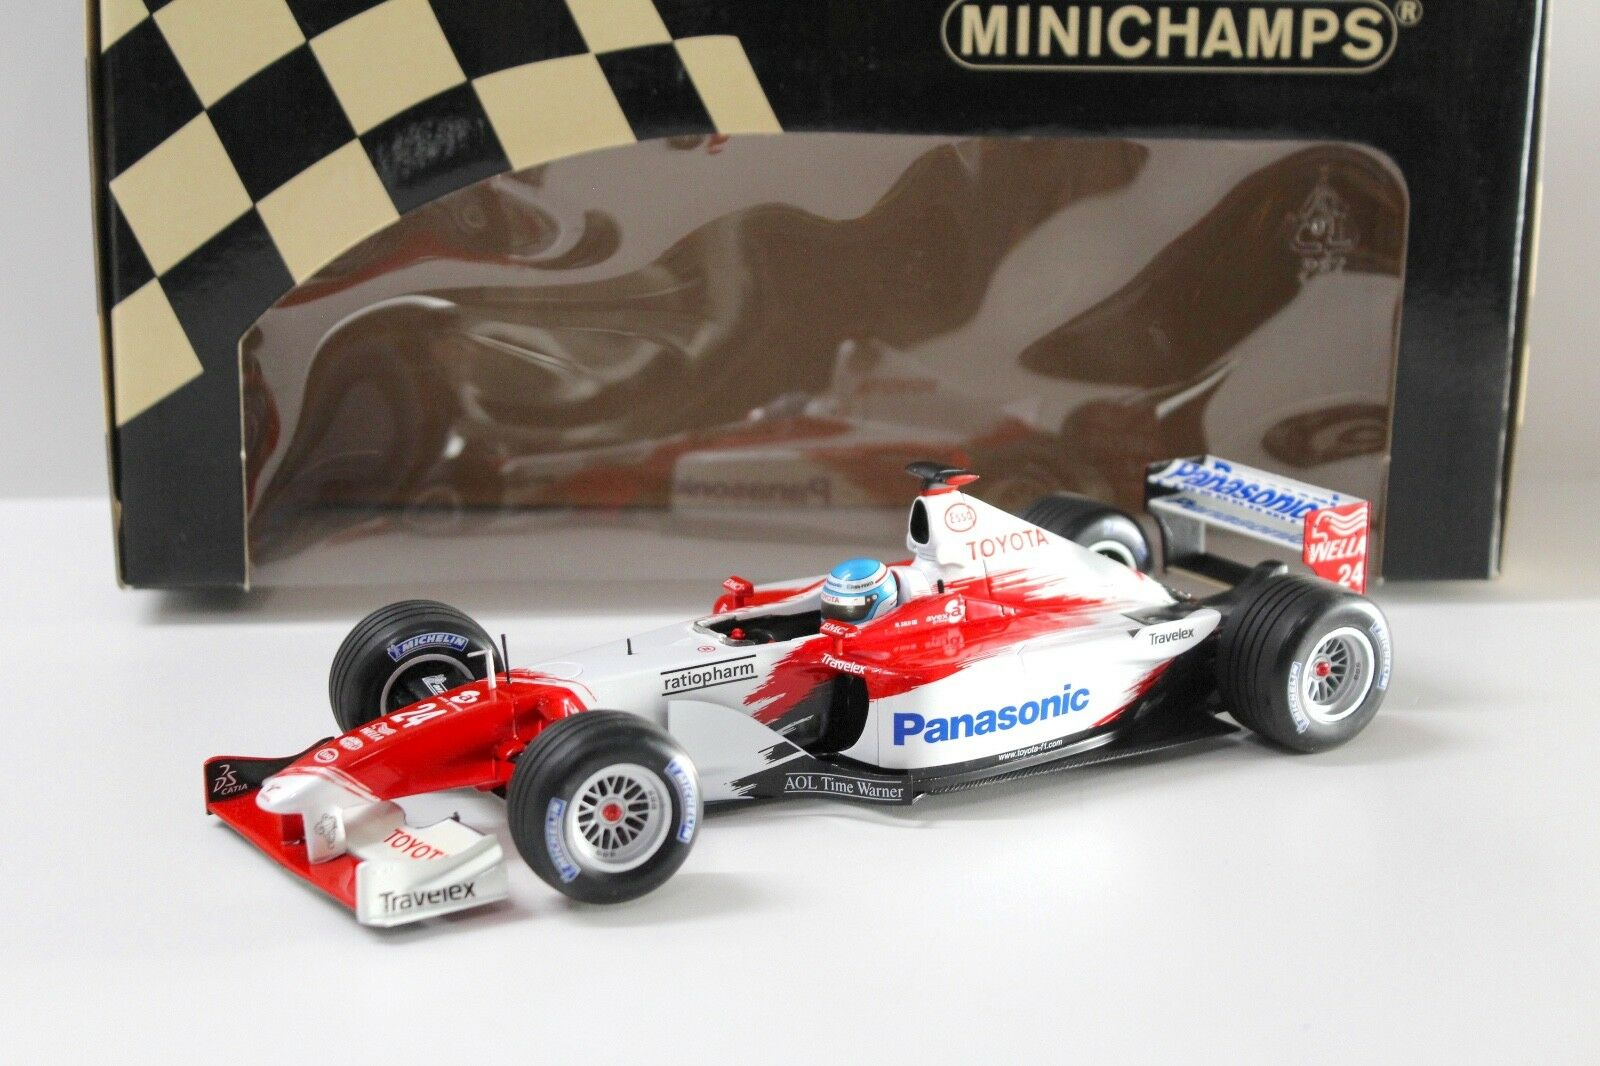 1 18 Minichamps PANASONIC TOYOTA RACING tf102 M. SALO NEW in Premium-MODELCARS